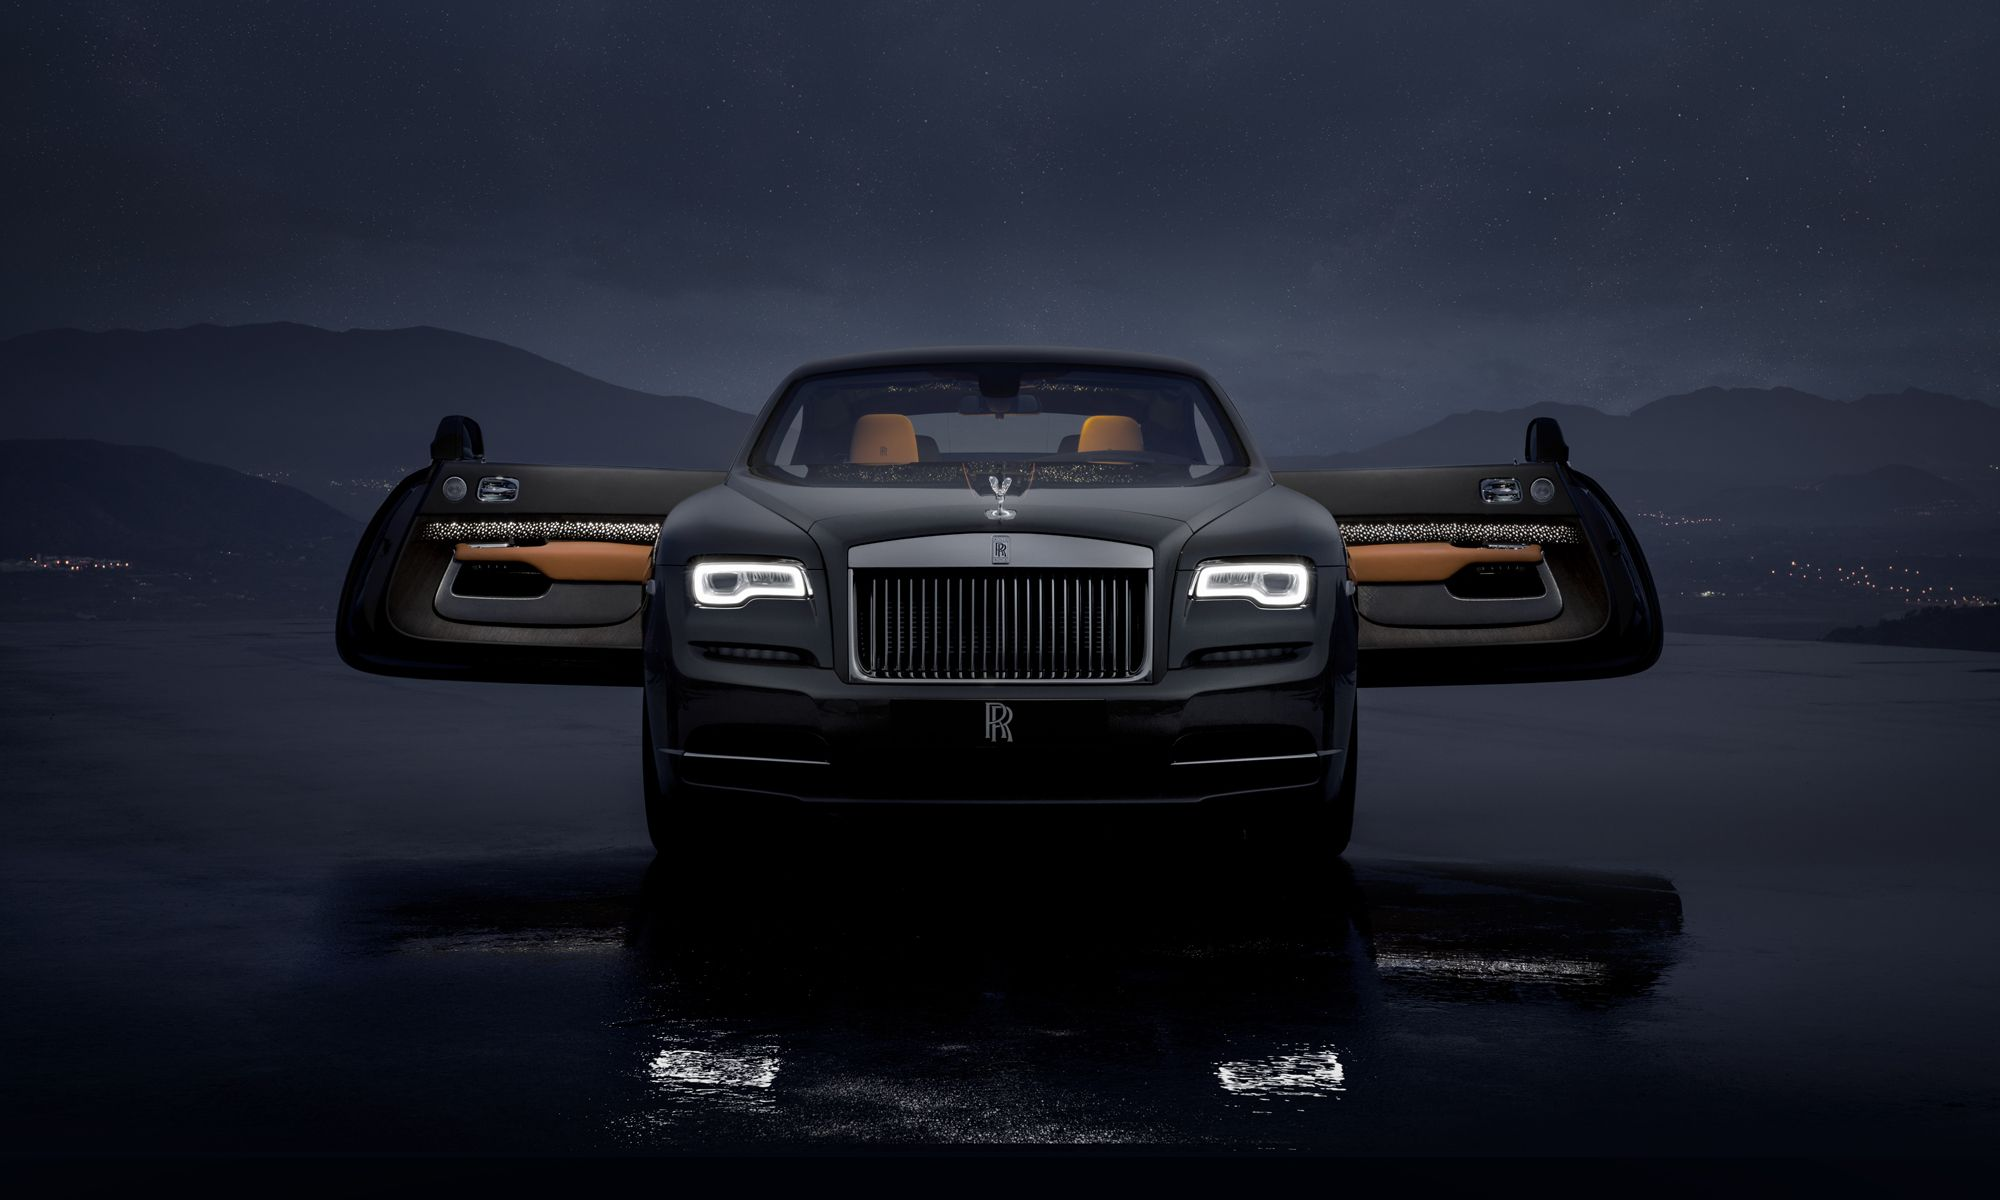 In Pictures: The Rolls-Royce Wraith Luminary Limited Collection